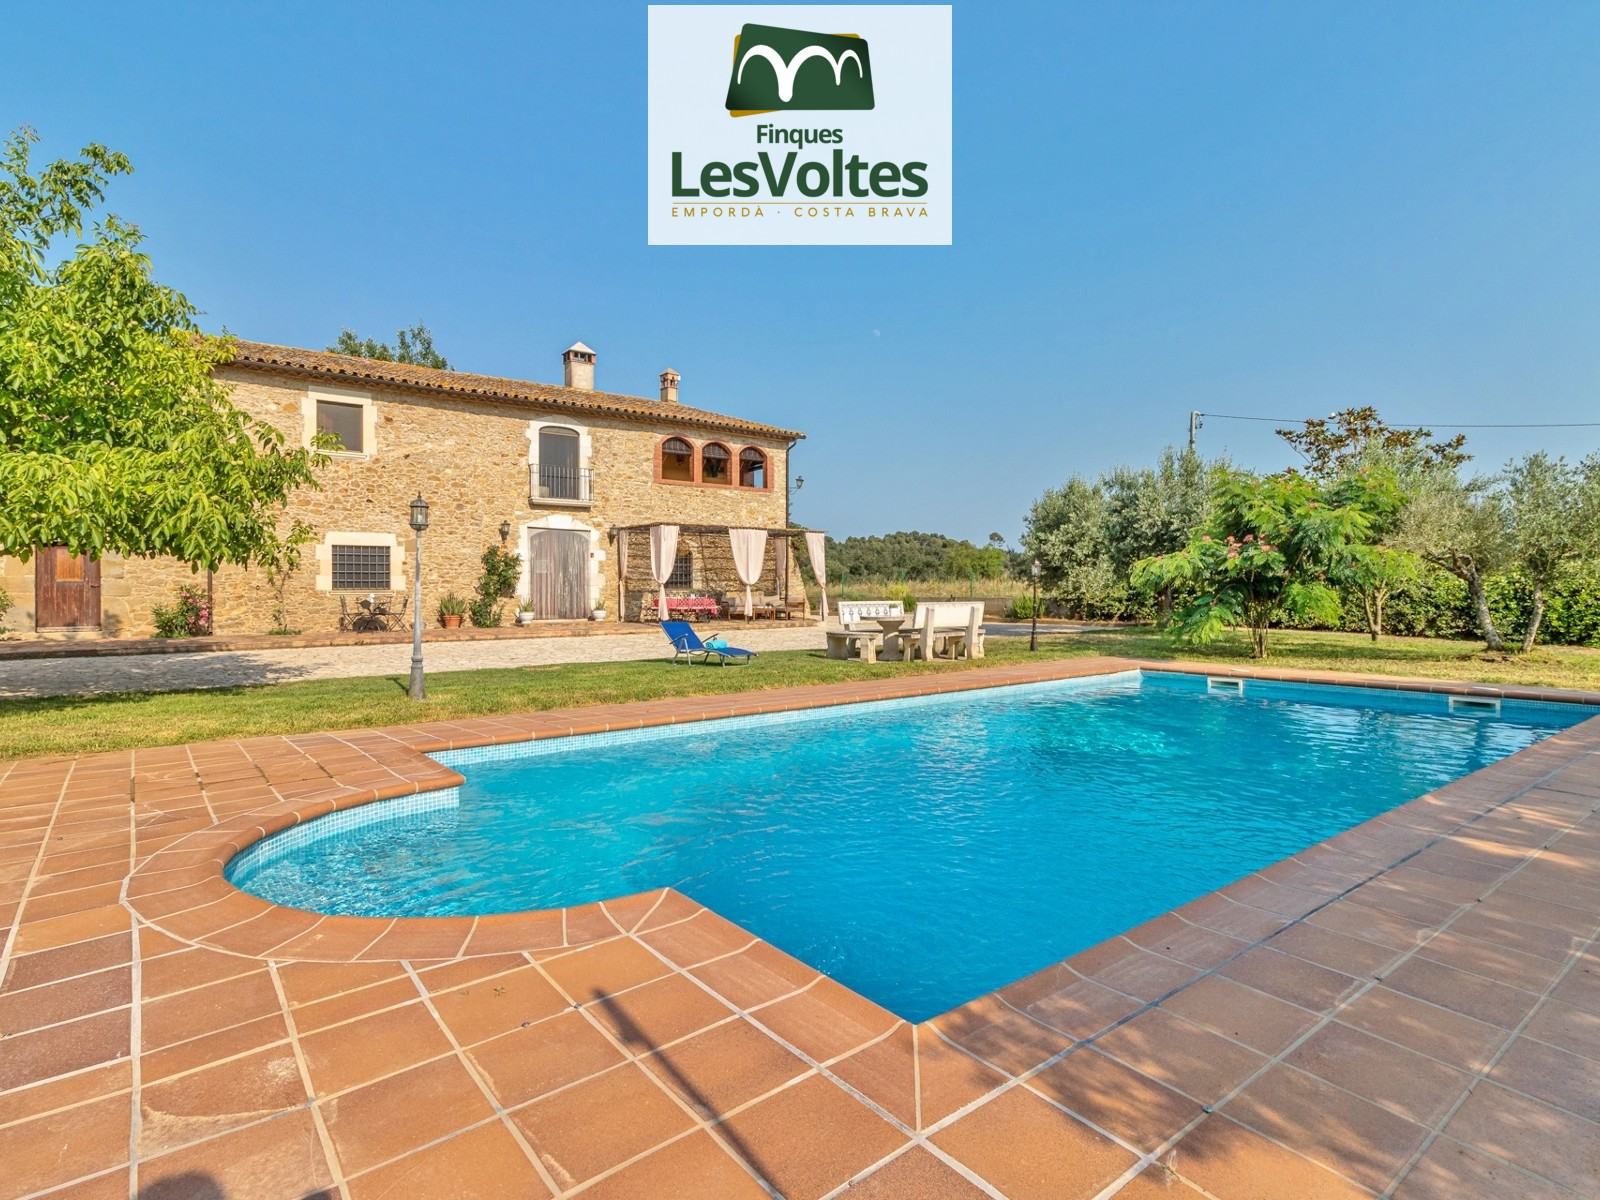 FANTASTIC RUSTIC FARMHOUSE FROM THE 13TH CENTURY COMPLETELY RENOVATED WITH GARDEN AND POOL FOR SECOND HOME RENTAL.